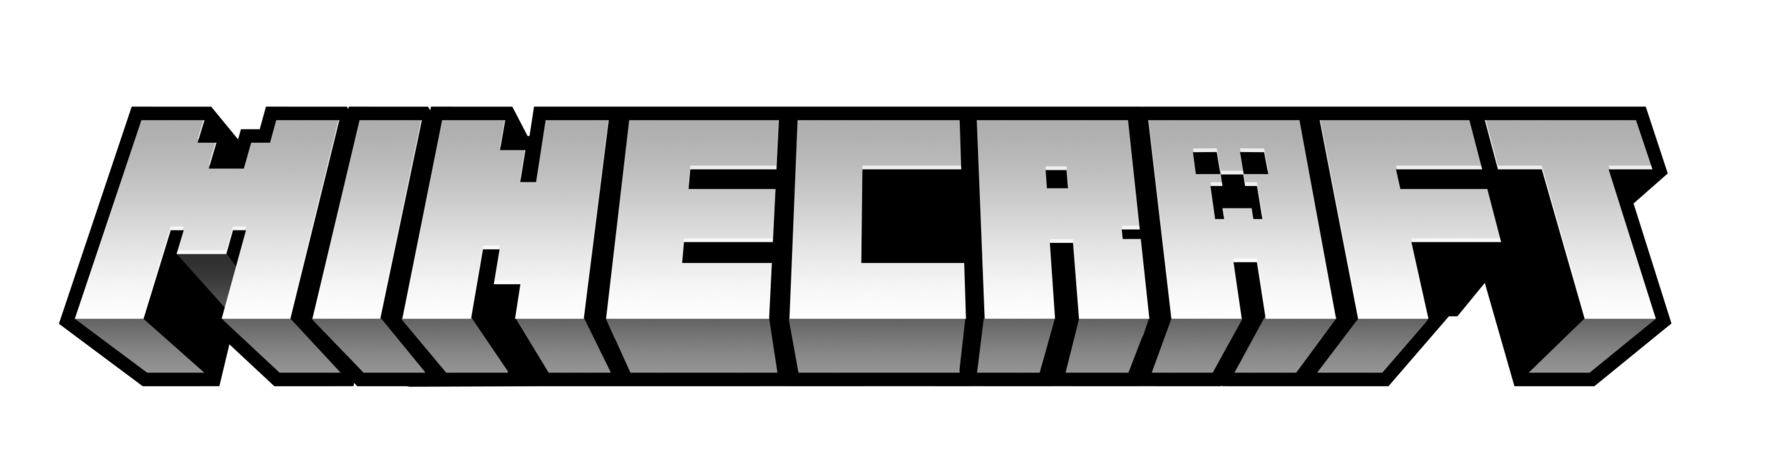 Minecraft text png. Hd logo by nuryrush